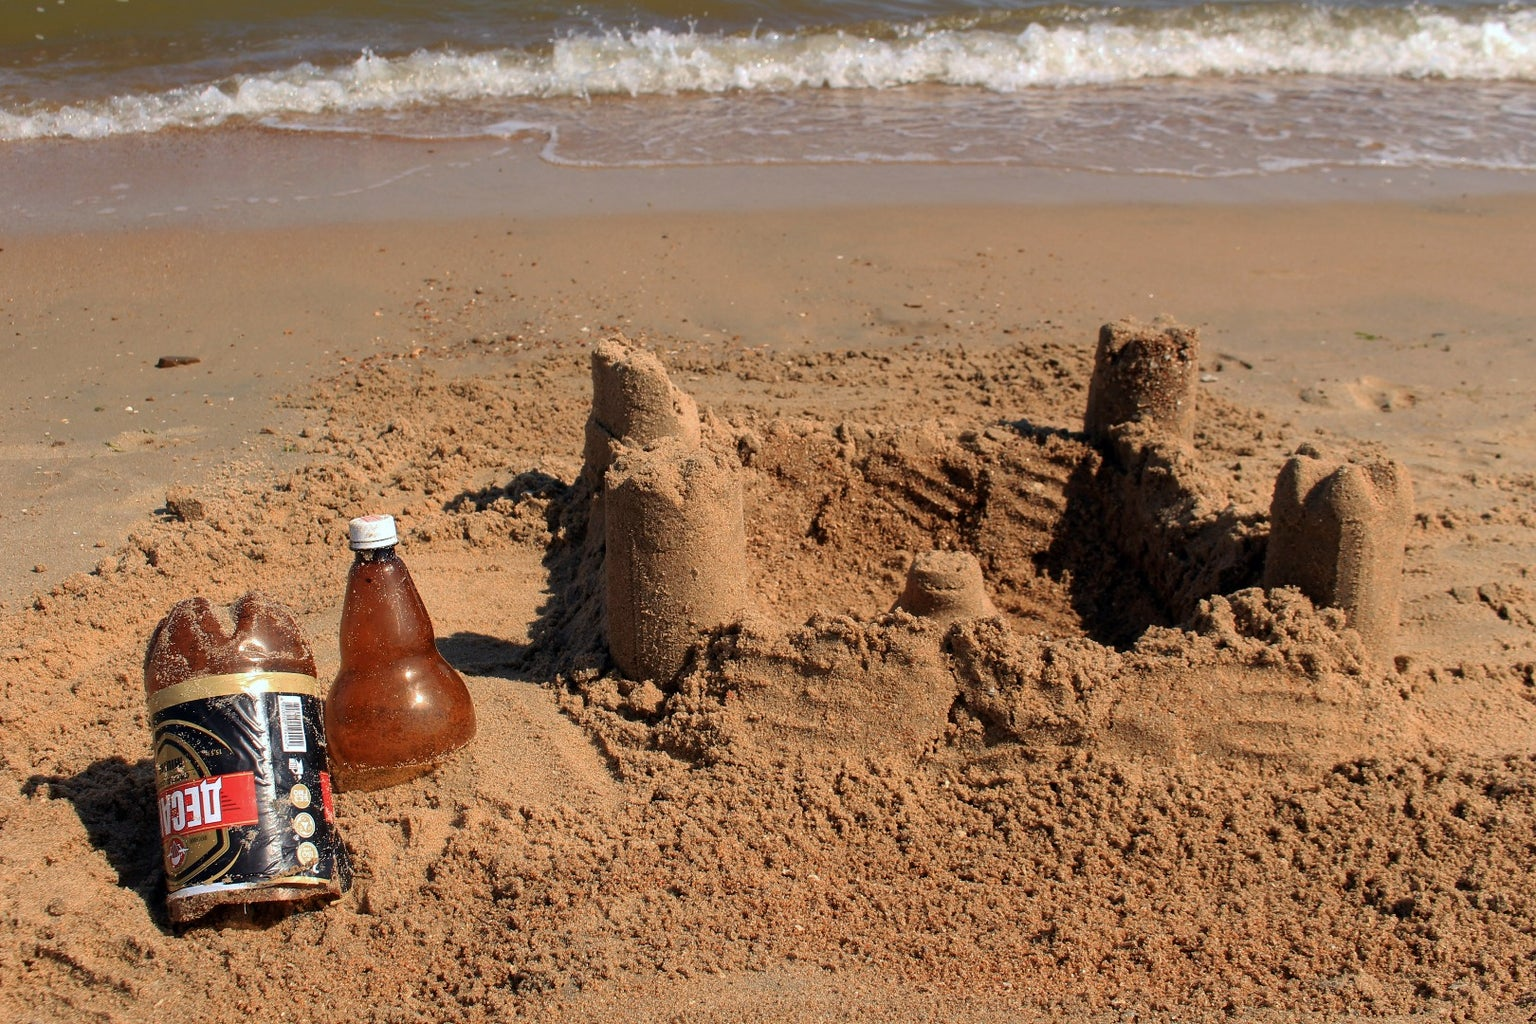 The Sand Castle Forms